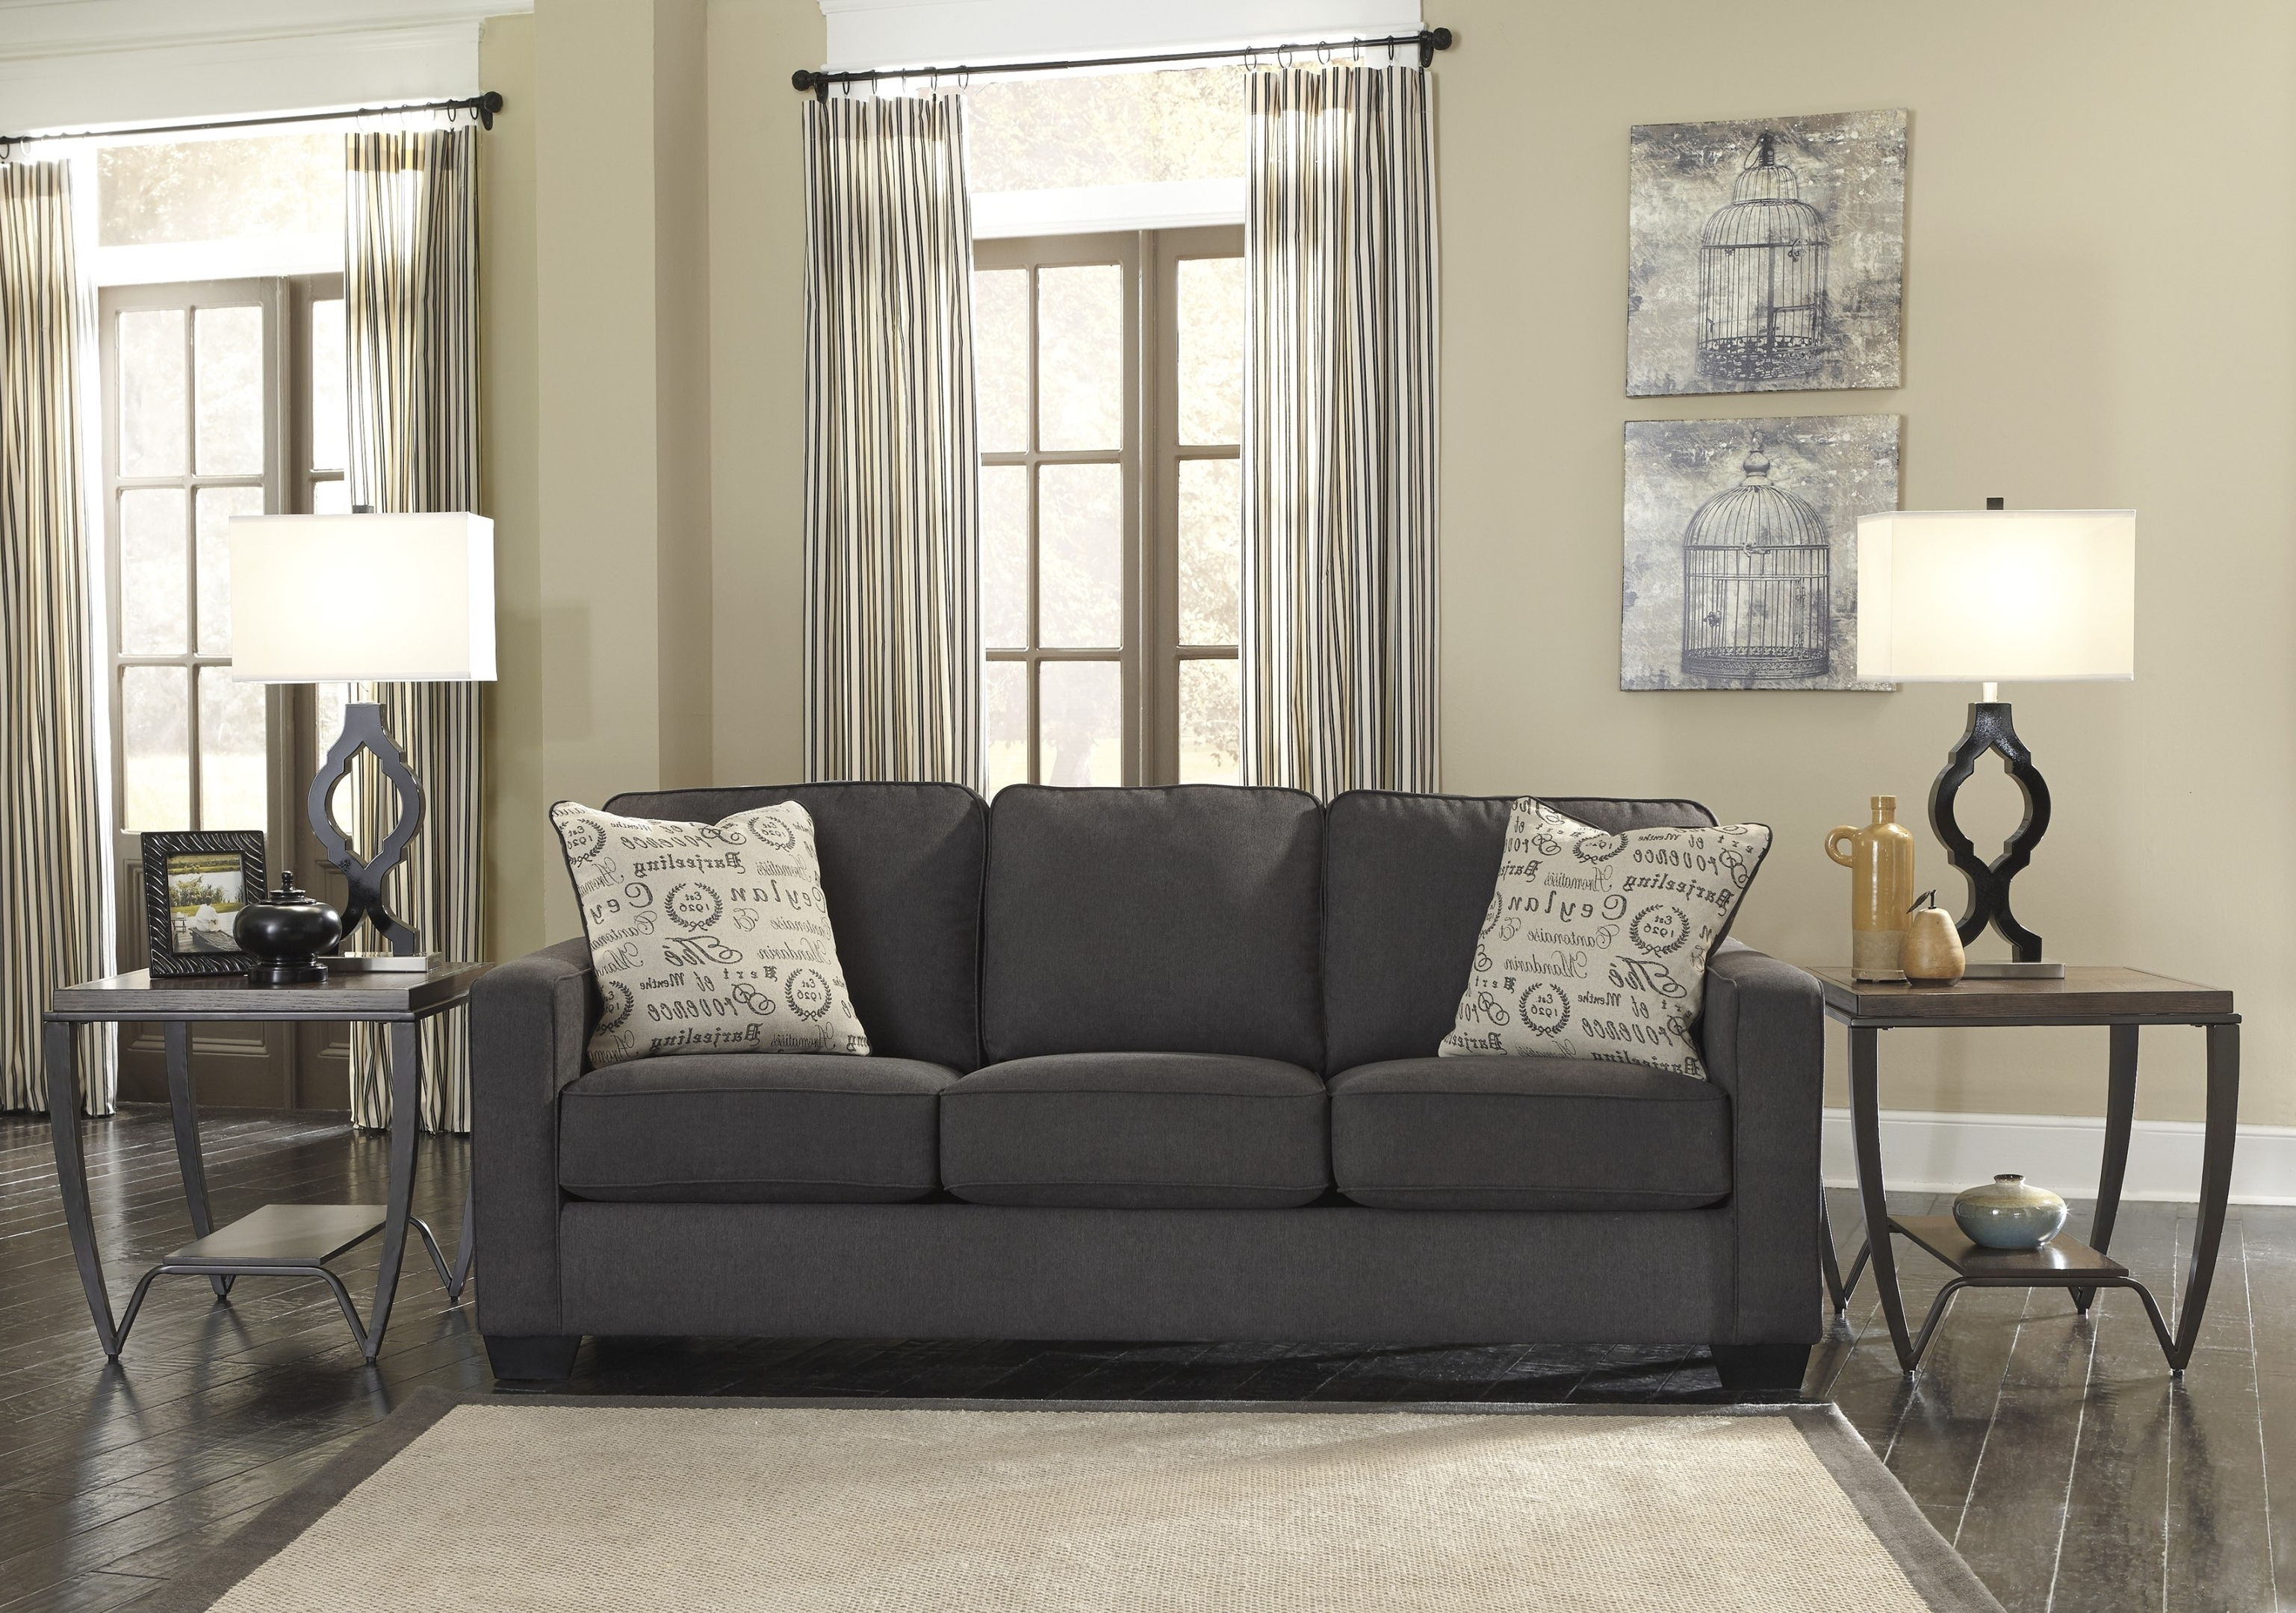 Charcoal Grey Sofas Within Preferred Blue And Yellow Living Room Ideas Finest Dark Gray Sofa Grey Couch (View 5 of 15)